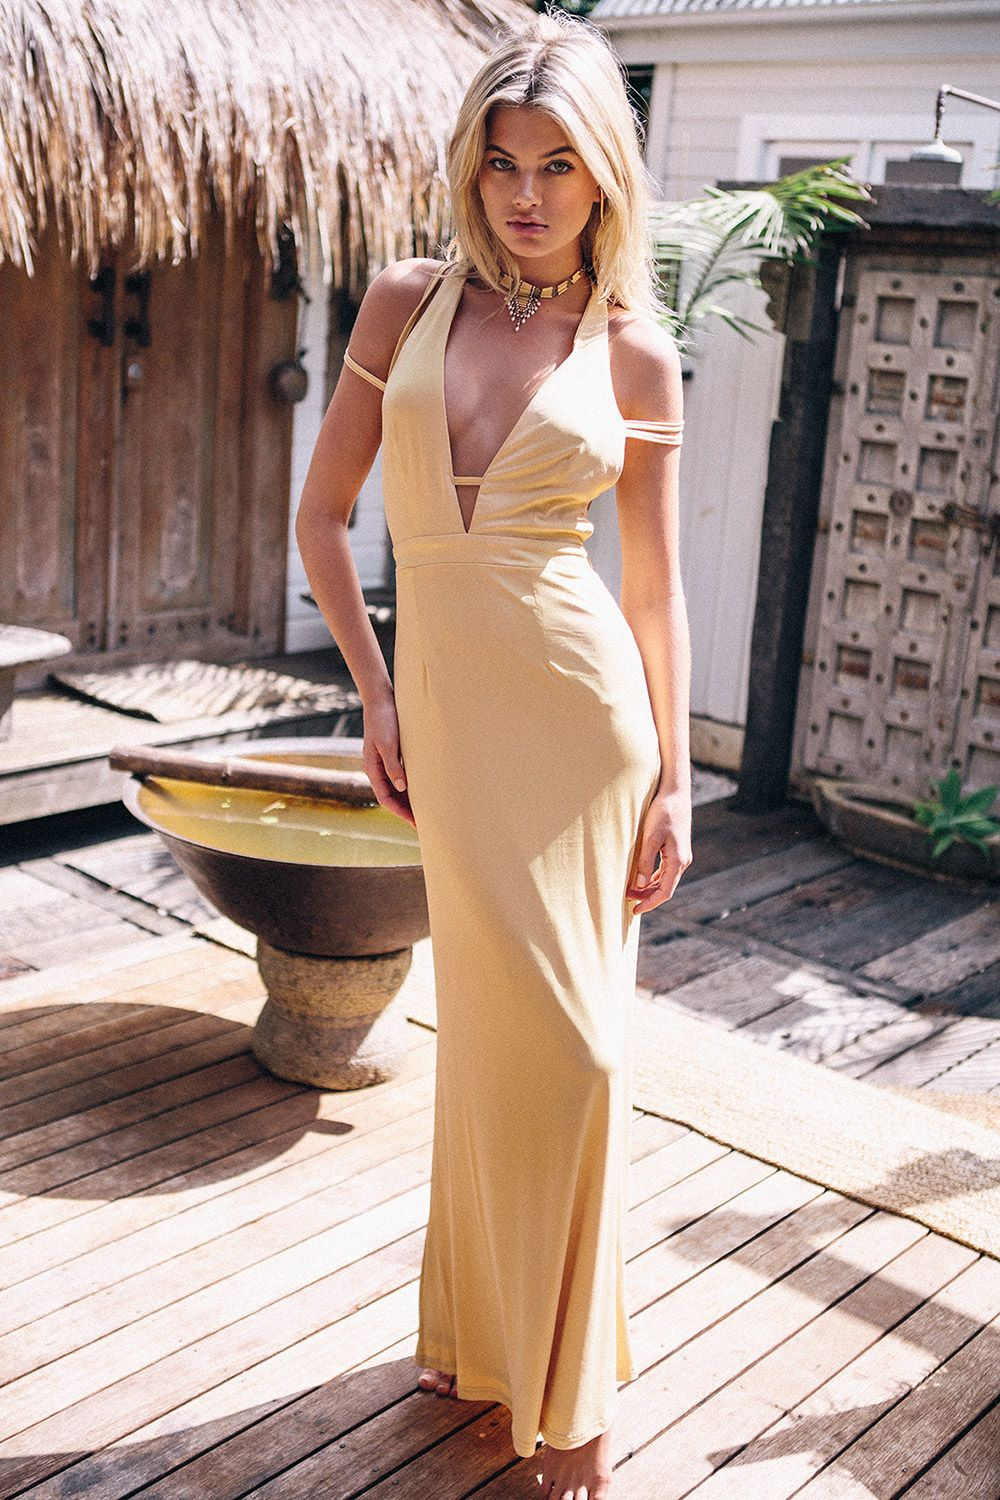 Made from a slinky fabric in a pastel mustard hue the striking